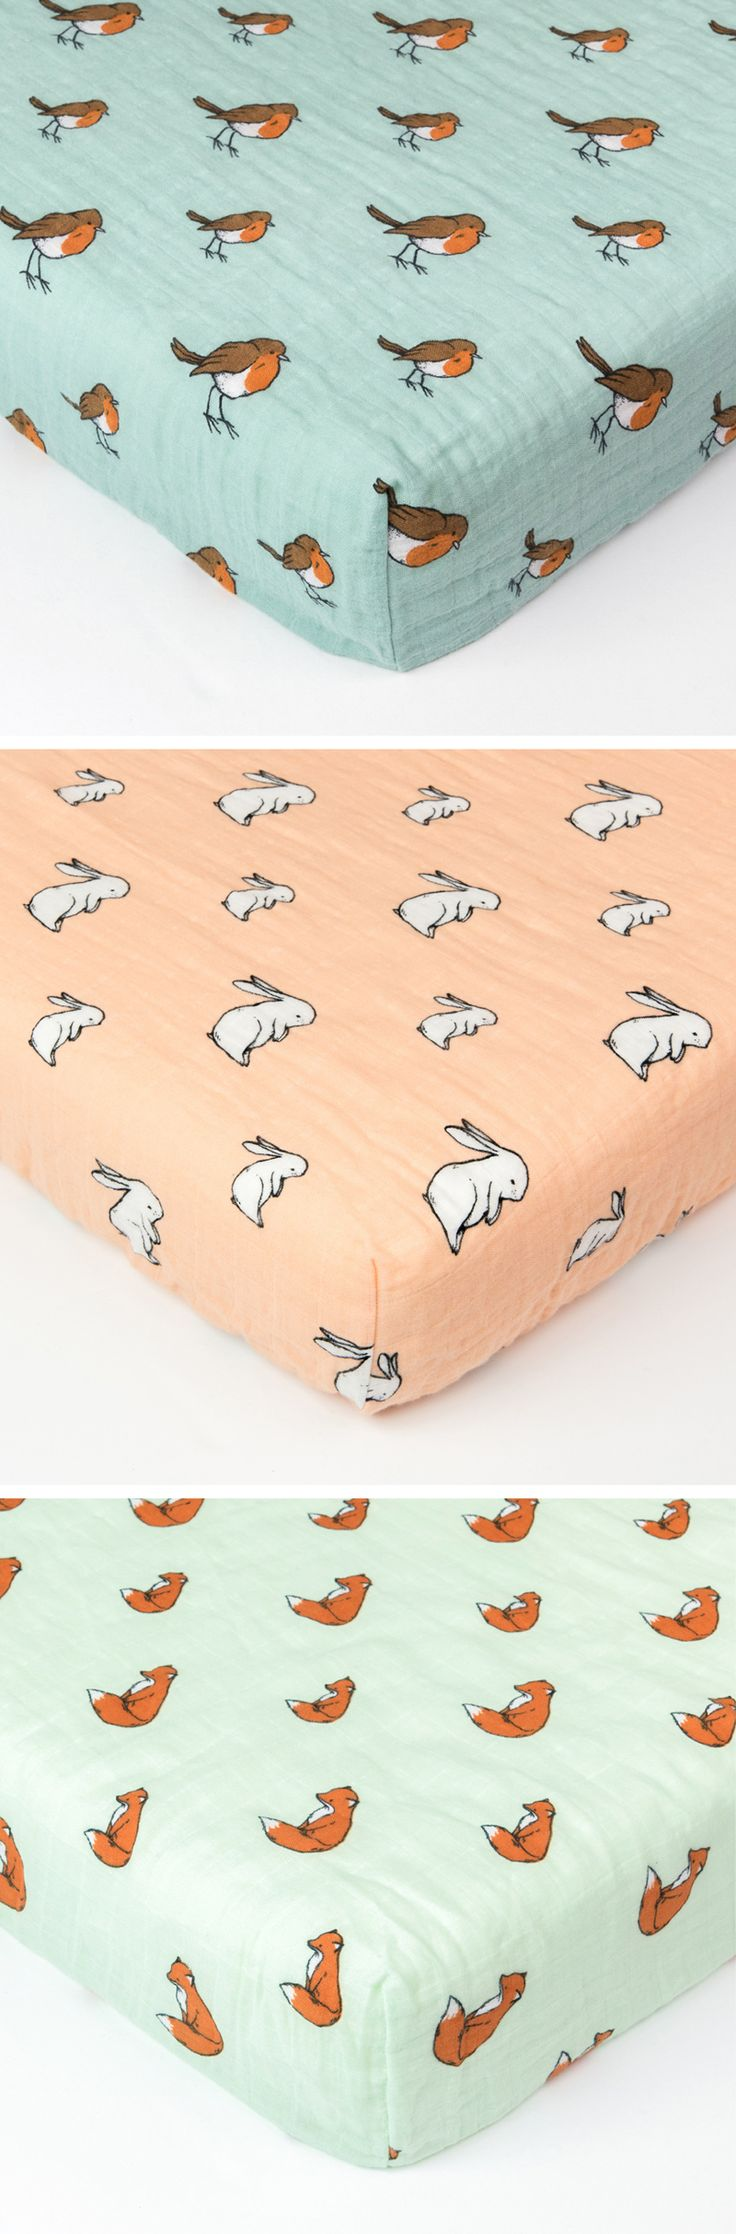 Say hello to our Woodland Friends baby cot bed or crib fitted sheet. 3 beautiful designs perfect for a woodland themed nursery, they've been carefully crafted to help your little one get a blissful sleep.  Our cot bedding sheets are made from the finest GOTS organic cotton muslin thread, and are elasticated to fit cot or crib mattresses from 130x70cm to 140x70cm. From top to bottom: Little Robin in muted blue. Long Ear Bunny in peach blush. Gentle Fox in mint green.